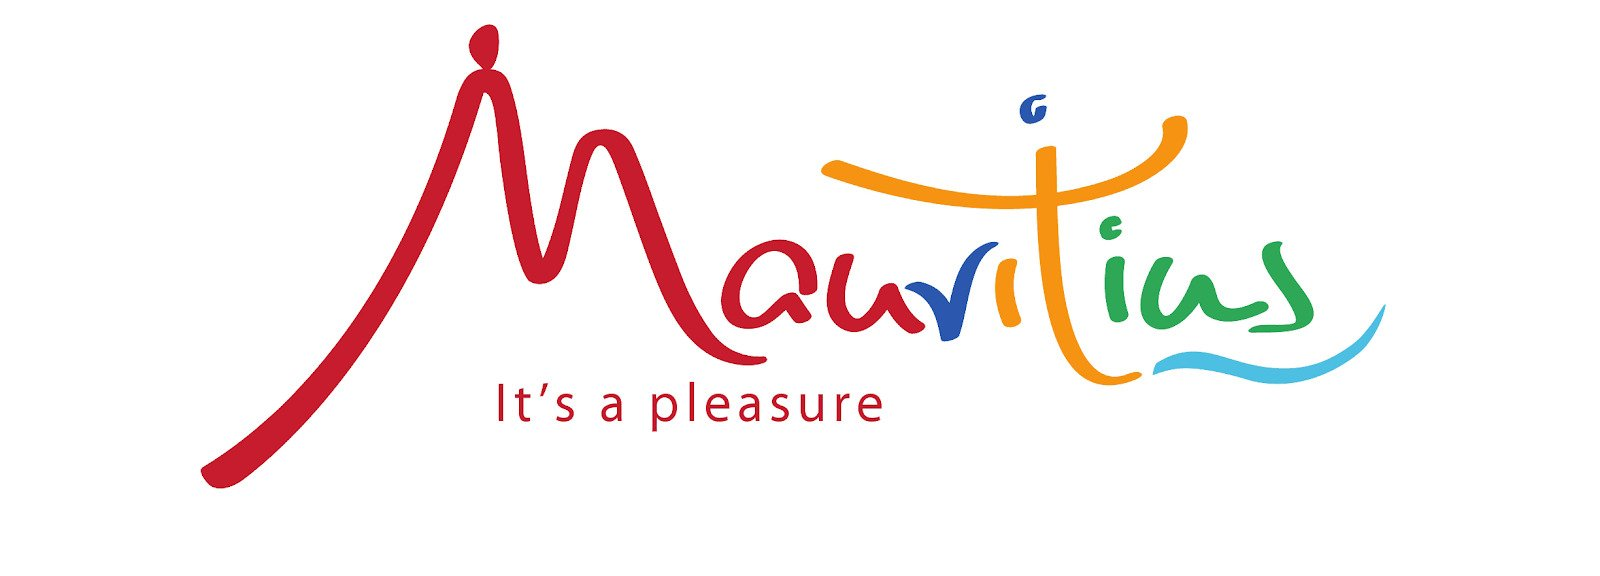 In this article, I have given detailed information on the Mauritius visa for Nigerians.